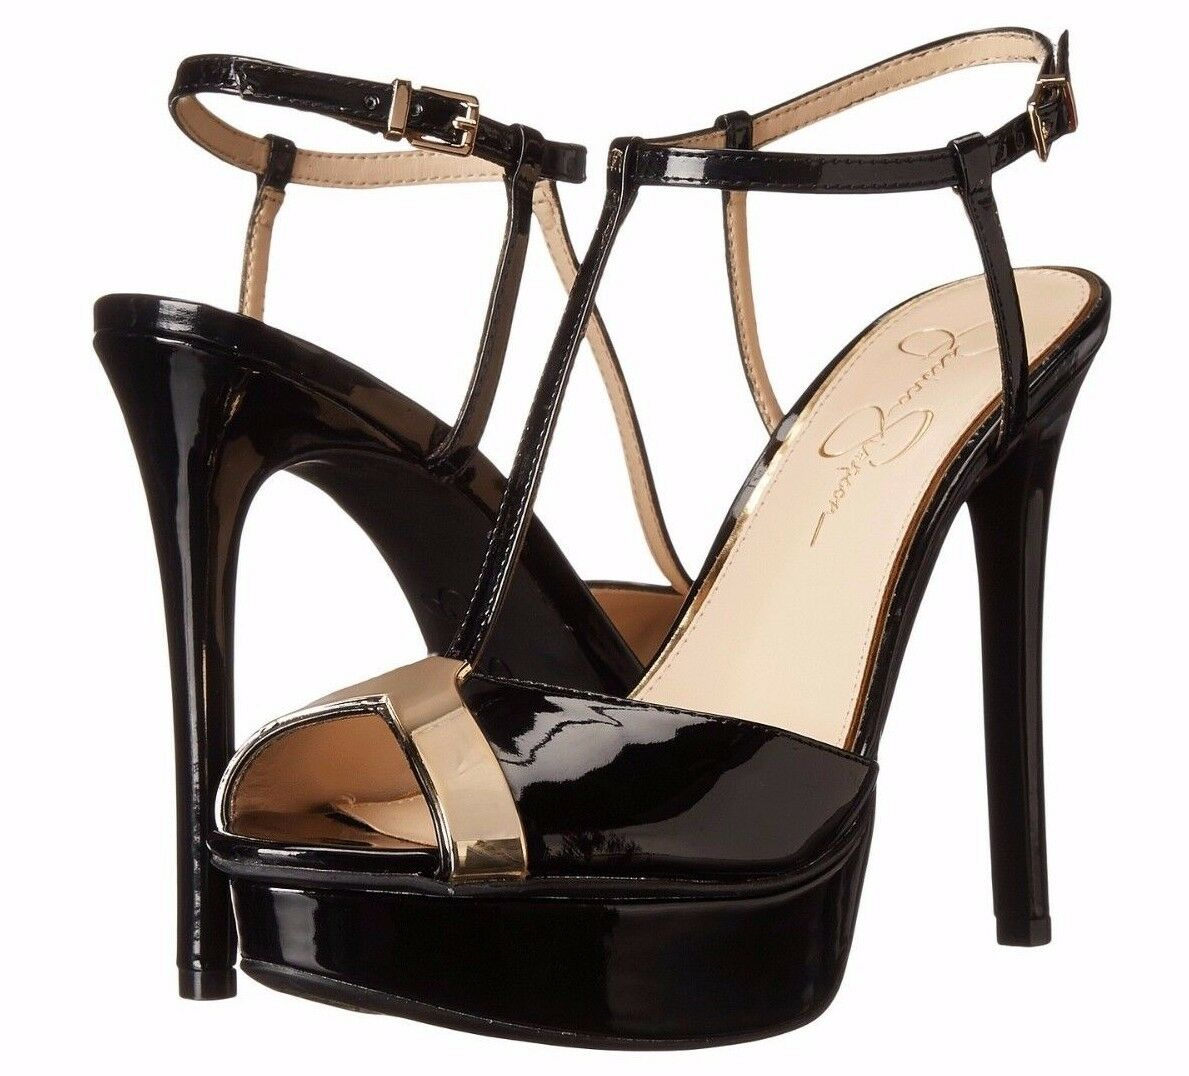 Jessica Simpson Carys Black w gold Accent T-Strap Patent Heels shoes - MSRP  119